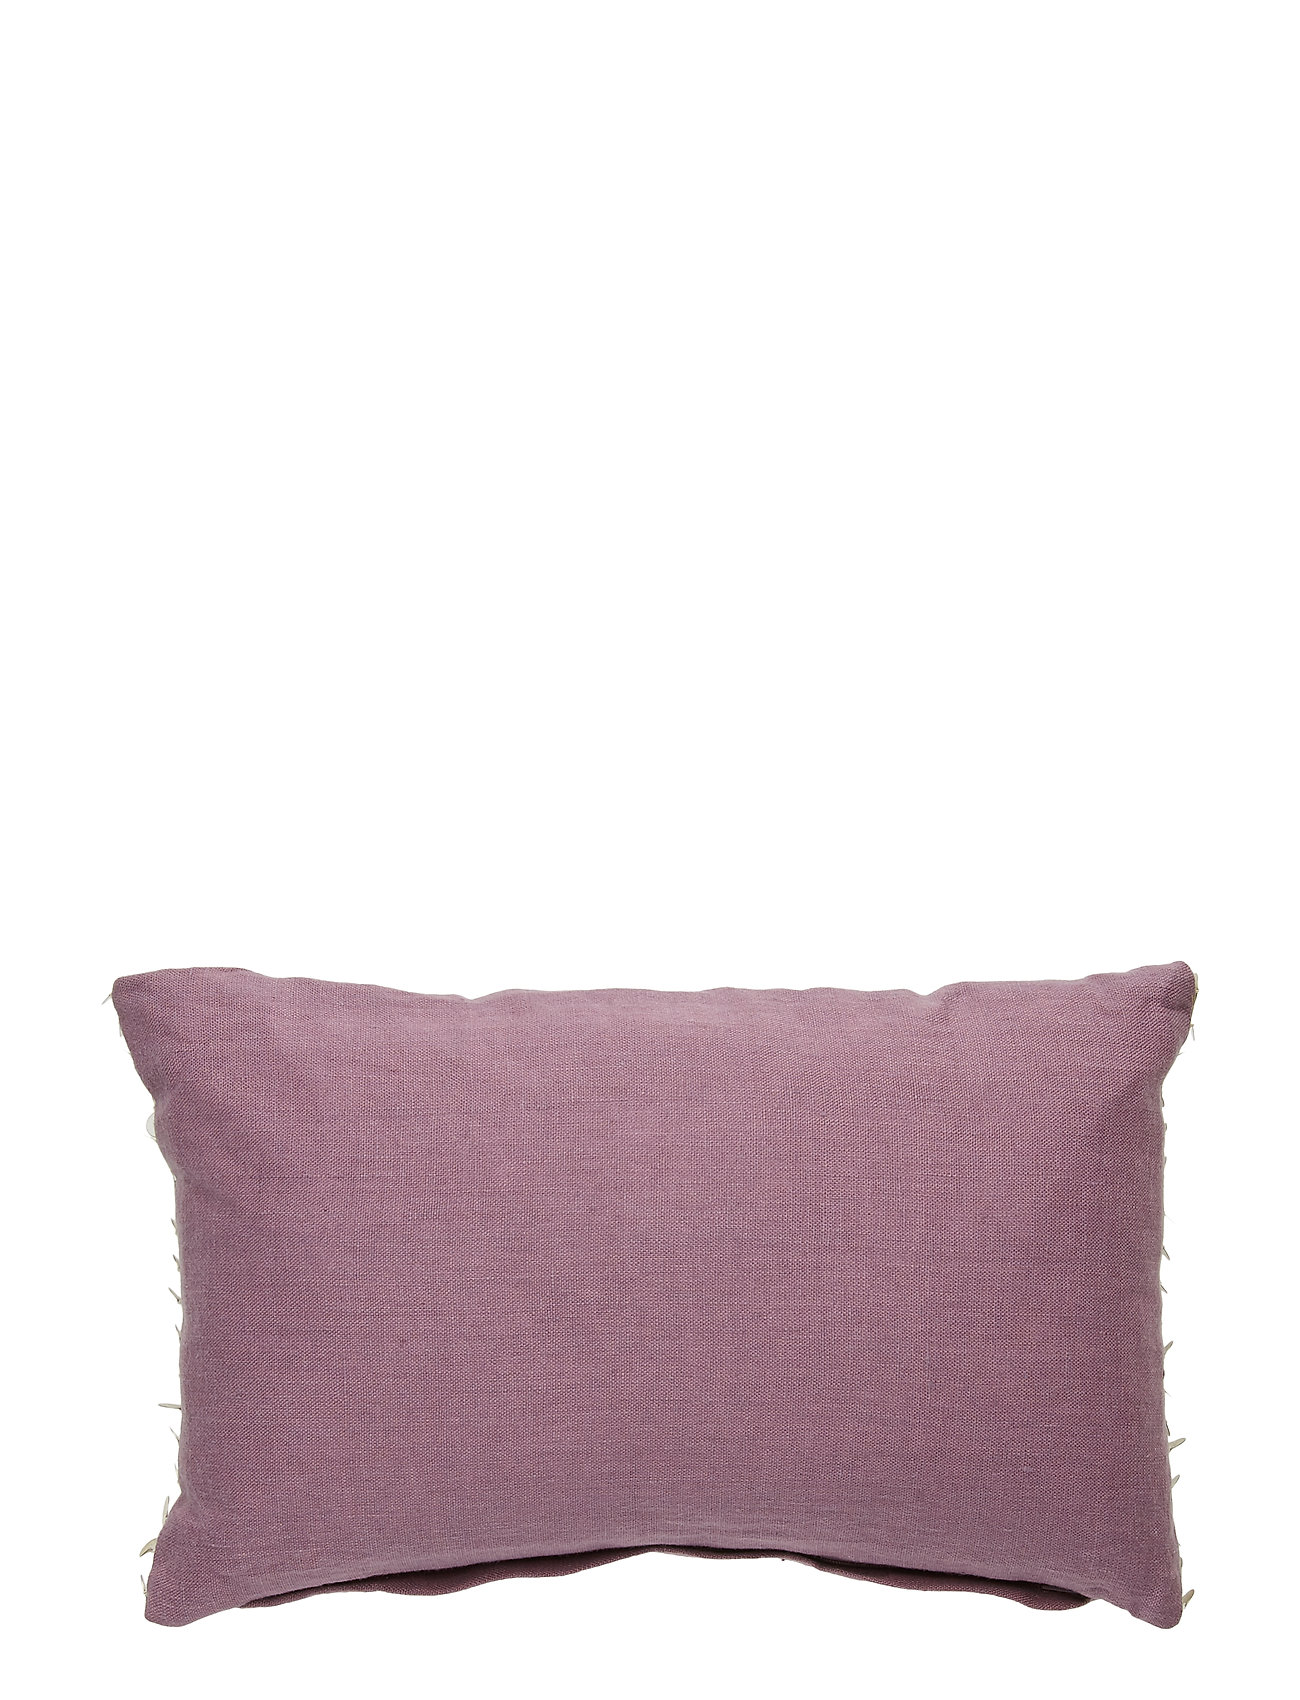 DAY Home Day Baby Maroc Cushion Cover - LILAC